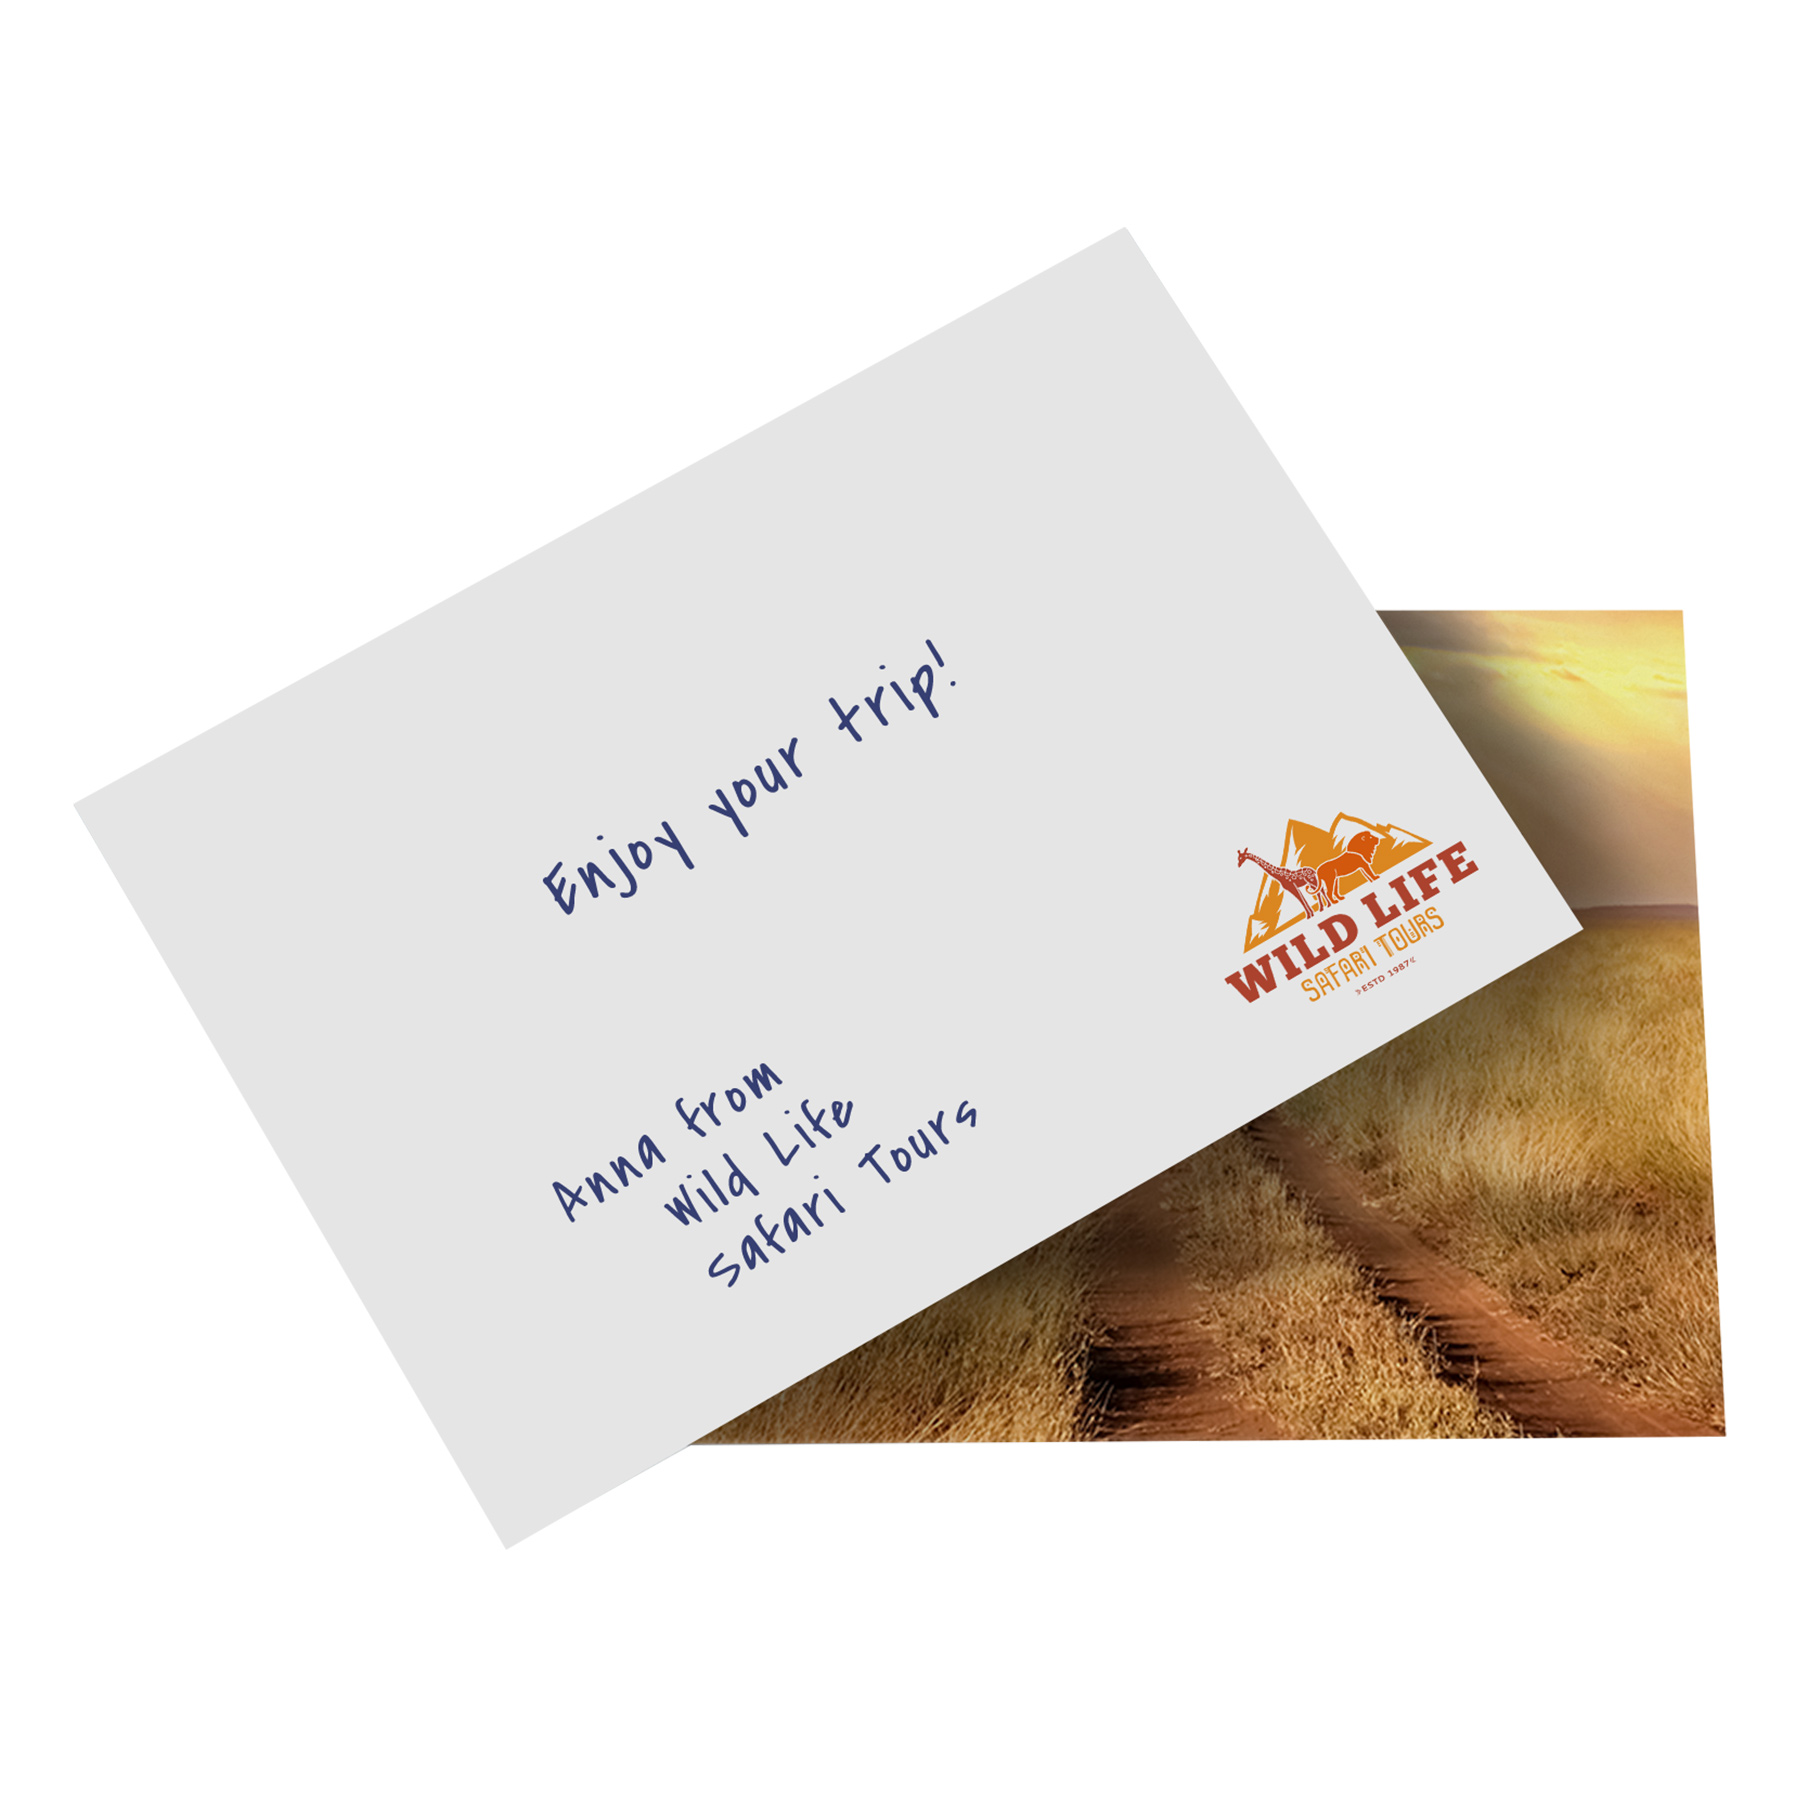 Beurs - With compliments cards